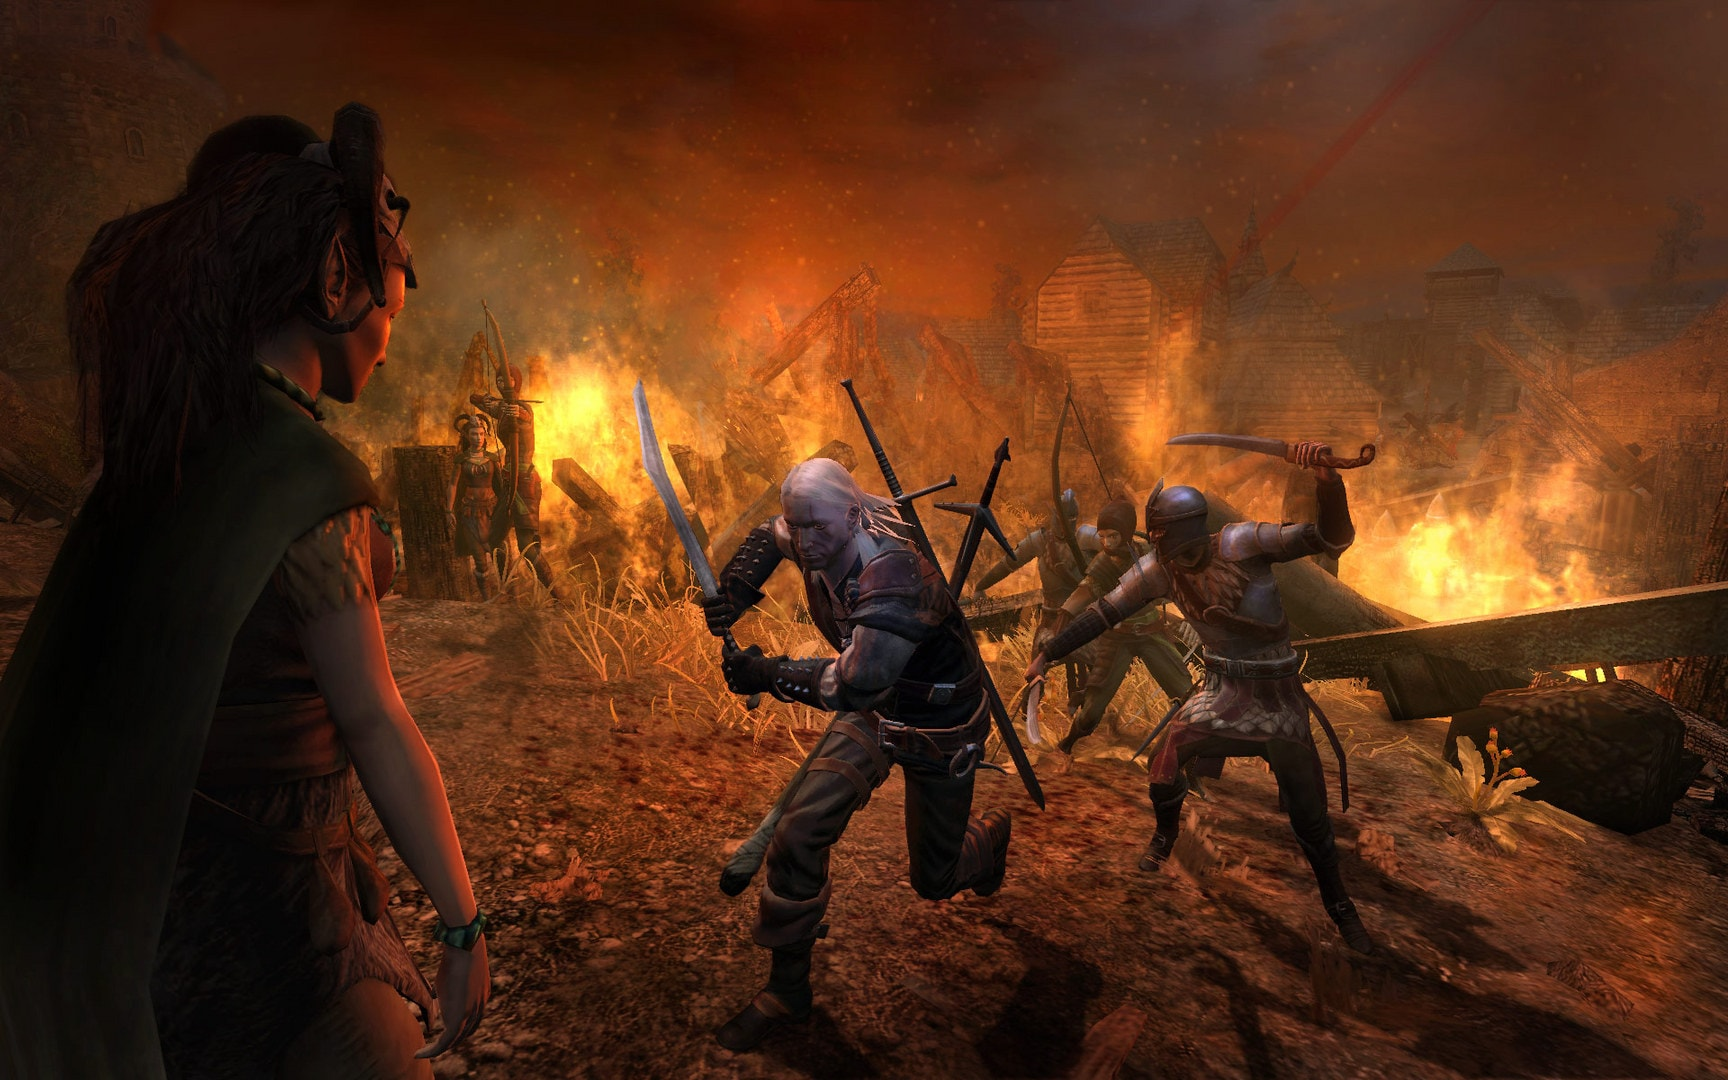 The Witcher: Enhanced Edition Director's Cut Steam Key GLOBAL - 4